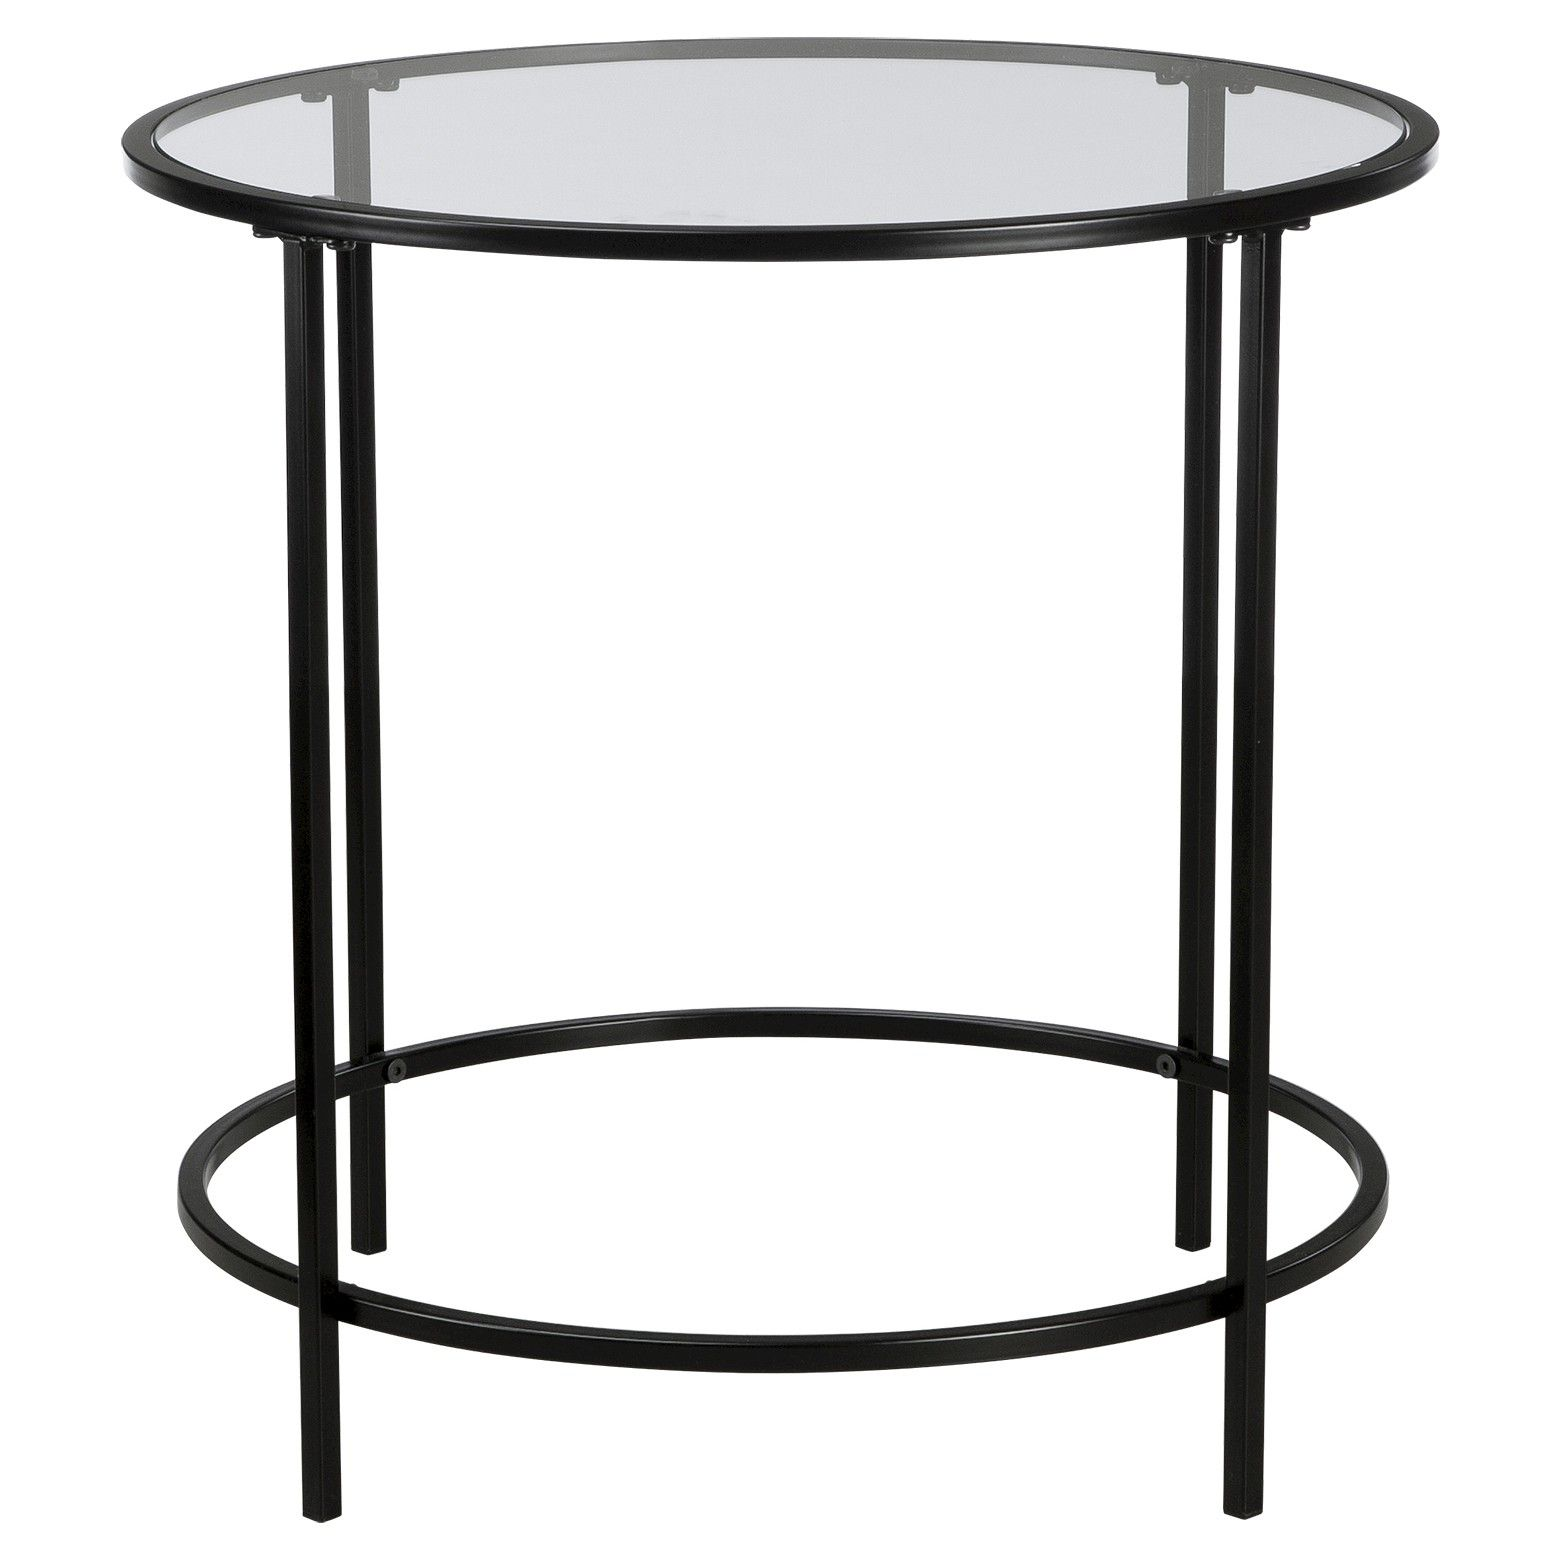 Soft Modern Round Side Table Black Clear Glass Sauder Black Side Table Round Side Table Black Black Glass Side Table [ 1560 x 1560 Pixel ]